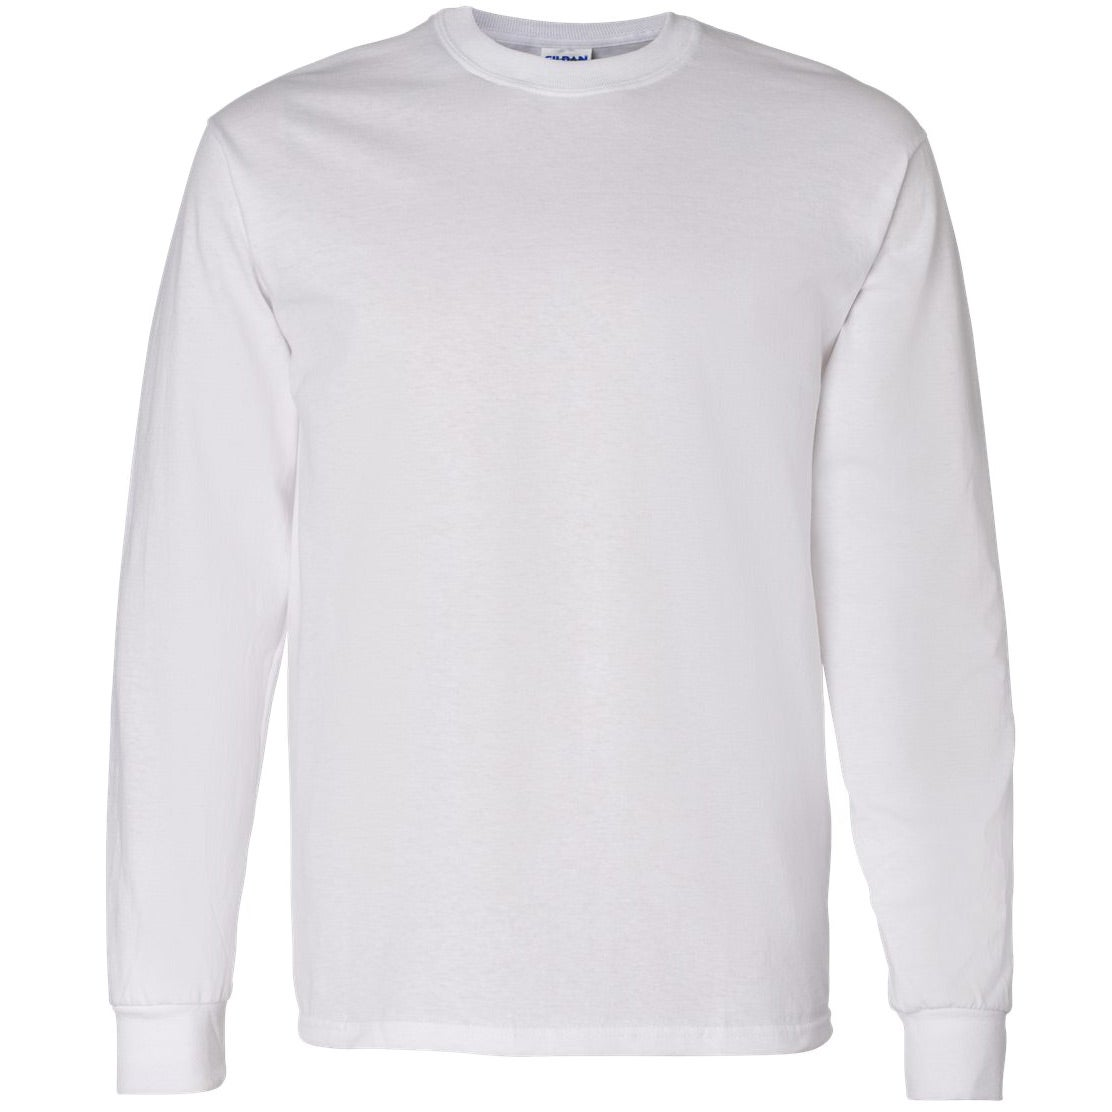 Gildan Heavy Cotton Long Sleeve T-Shirt (White)